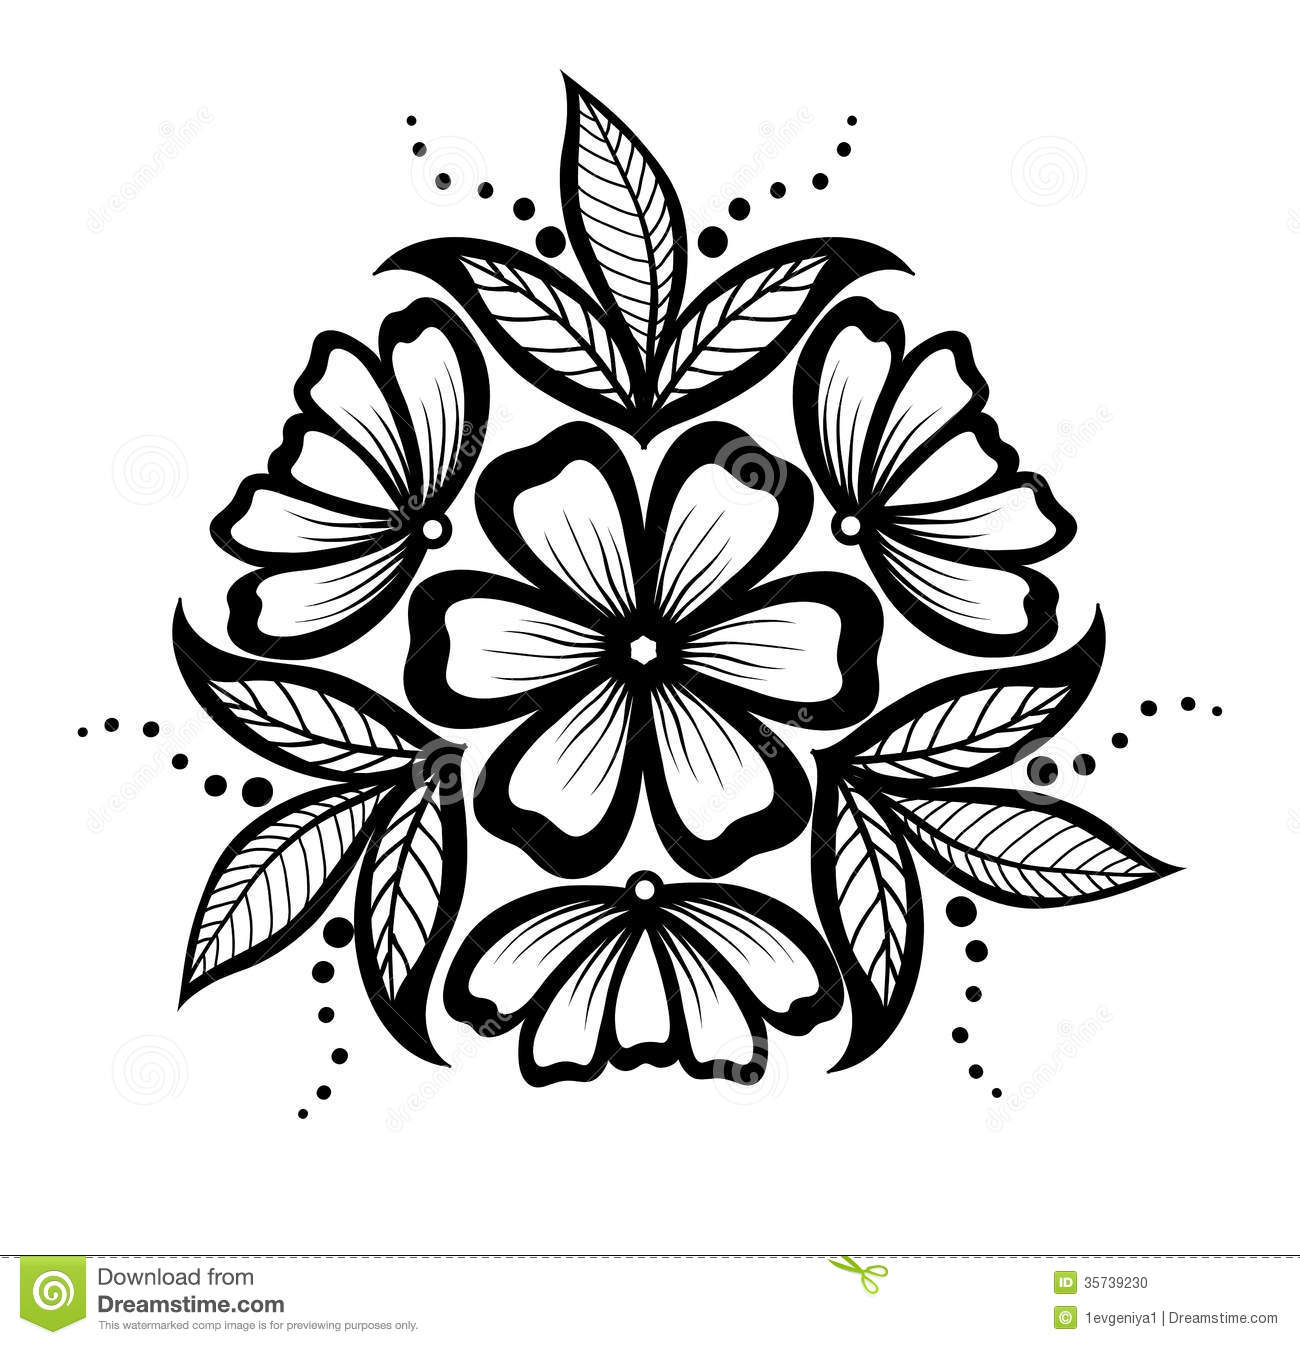 Beautiful floral pattern design element in the old style stock download beautiful floral pattern design element in the old style stock vector illustration mightylinksfo